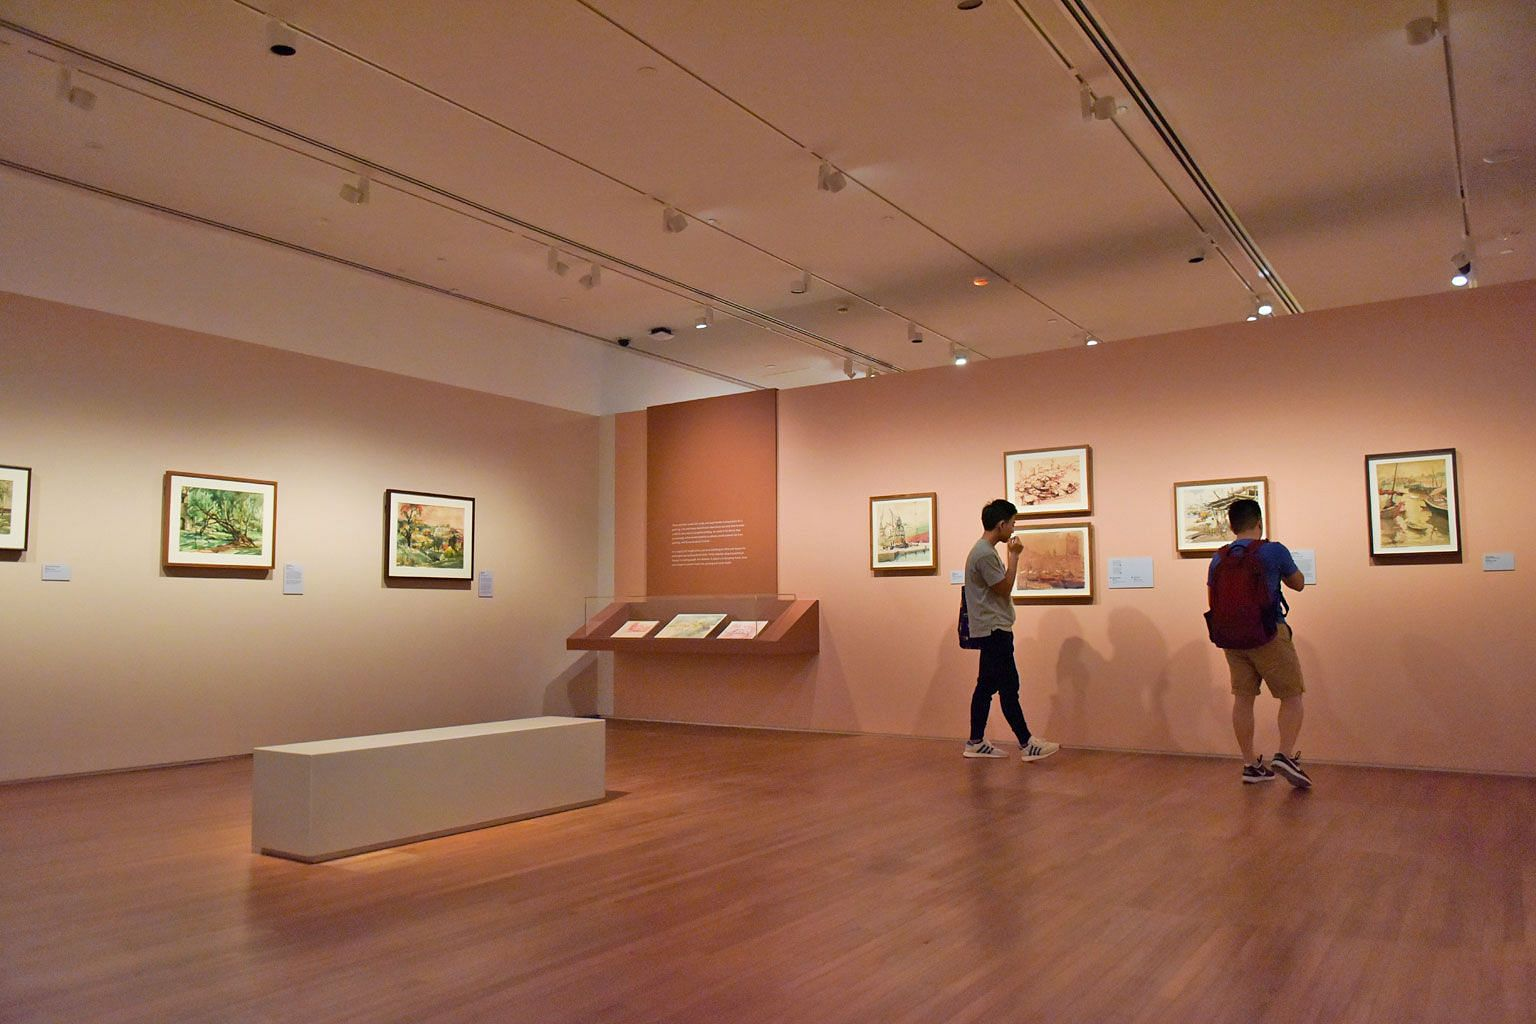 Artworks at the National Gallery Singapore are spread out over an area of 64,000 sq m and navigating one's way can be difficult.